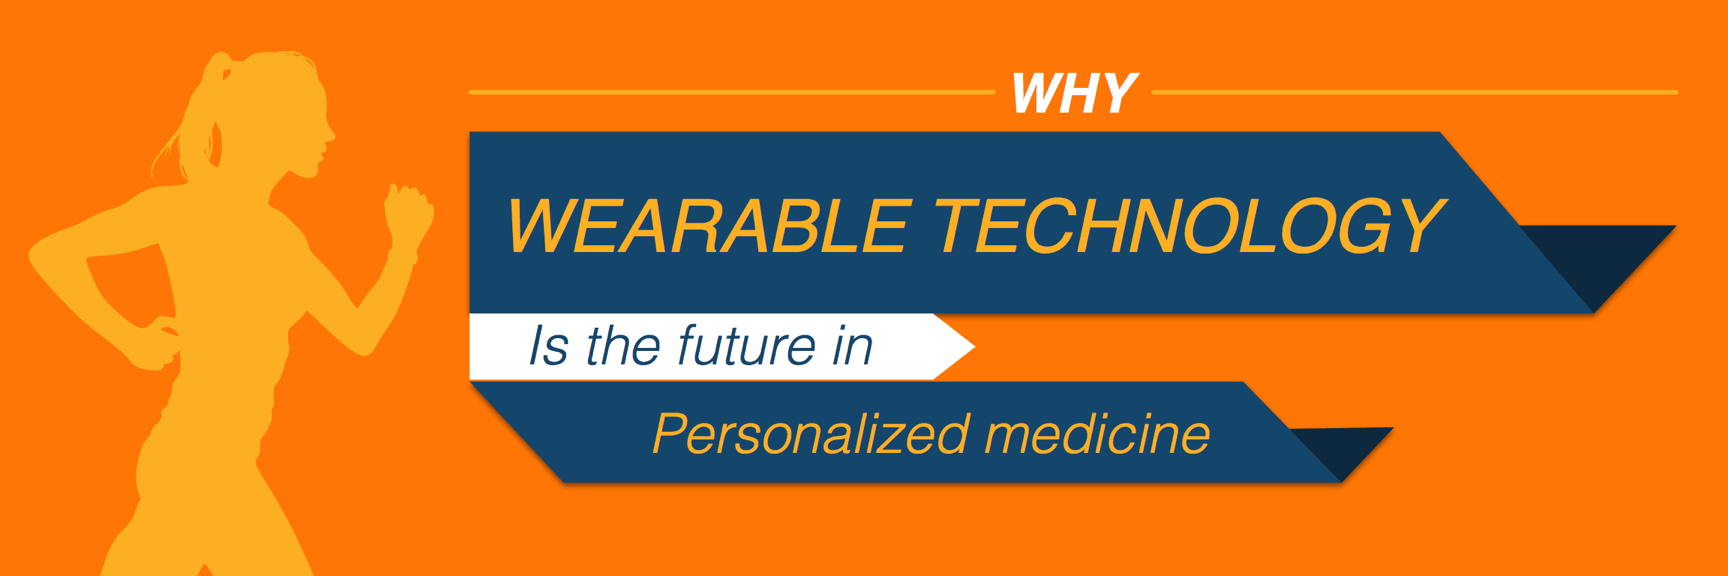 wearable technology is the future in personalized medicine